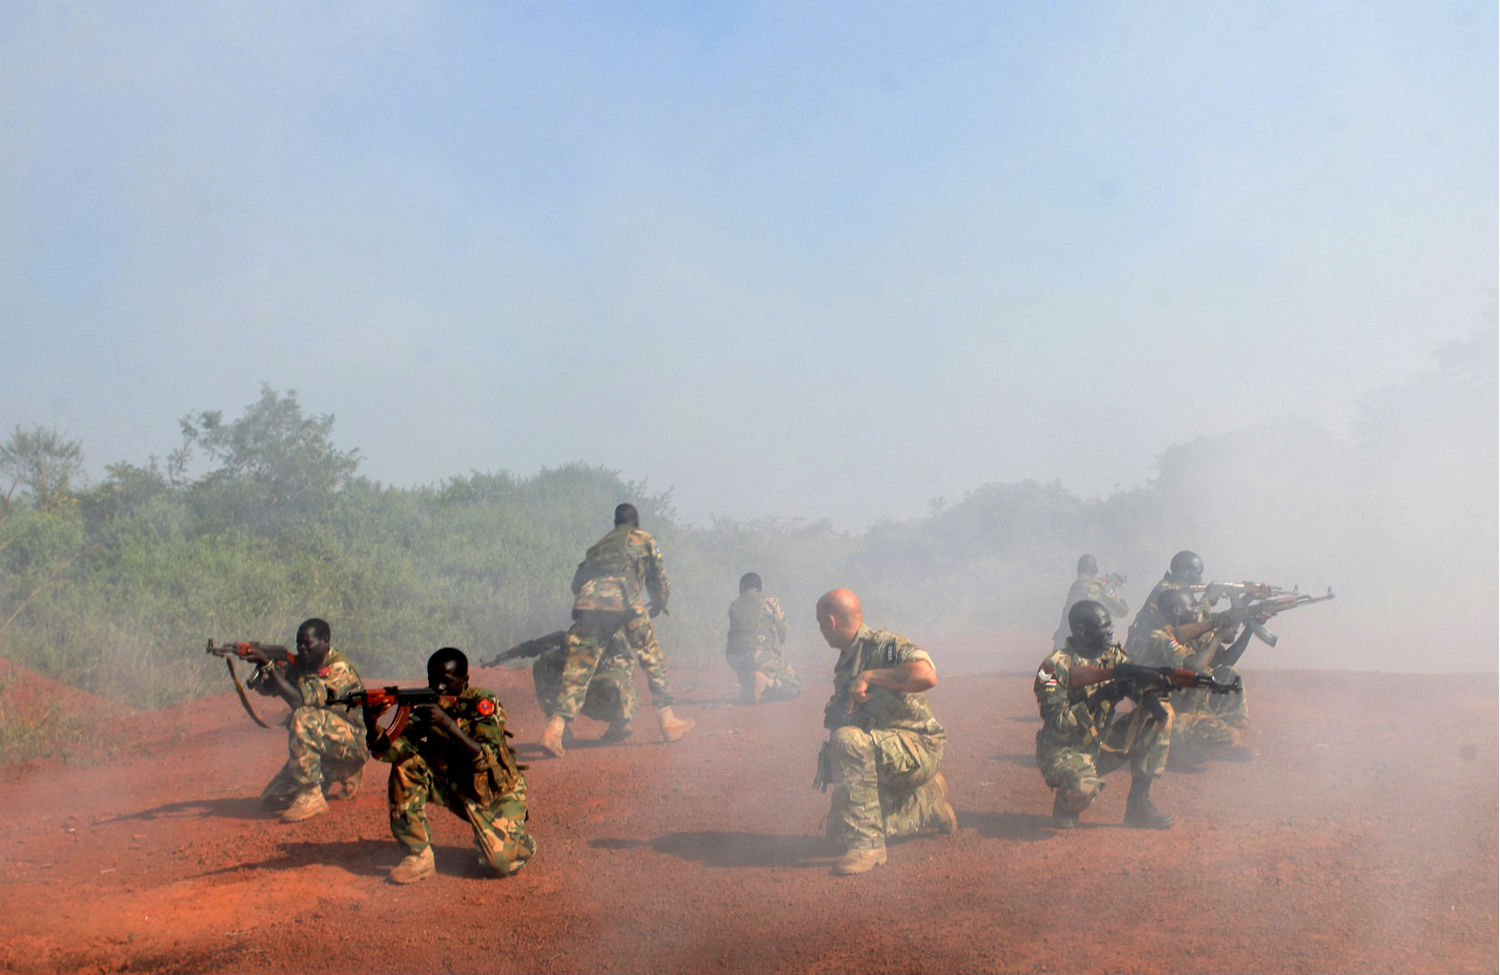 A U.S. Special Forces trainer supervises a military assault drill for a unit within the Sudan People's Liberation Army (SPLA) in Nzara. (Andreea Campean/Reuters)